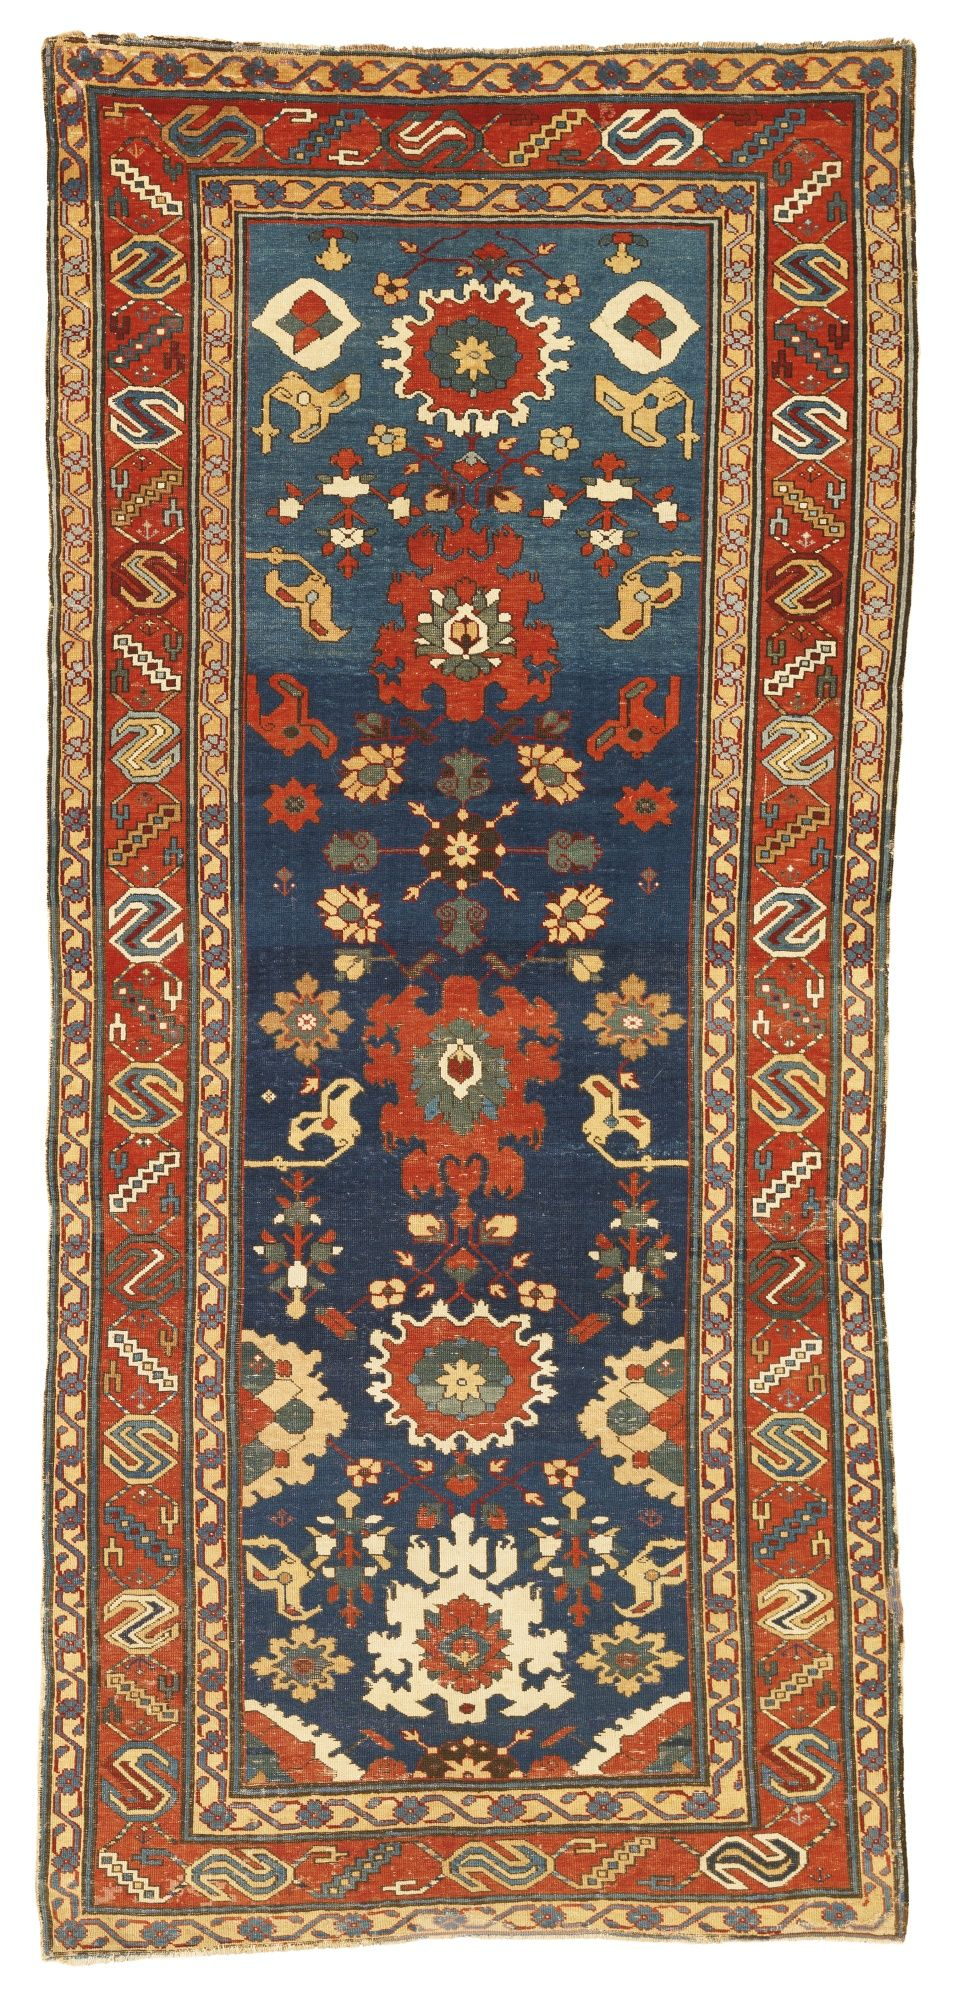 Caucasian Kuba long rug, early 19th century Tappeti